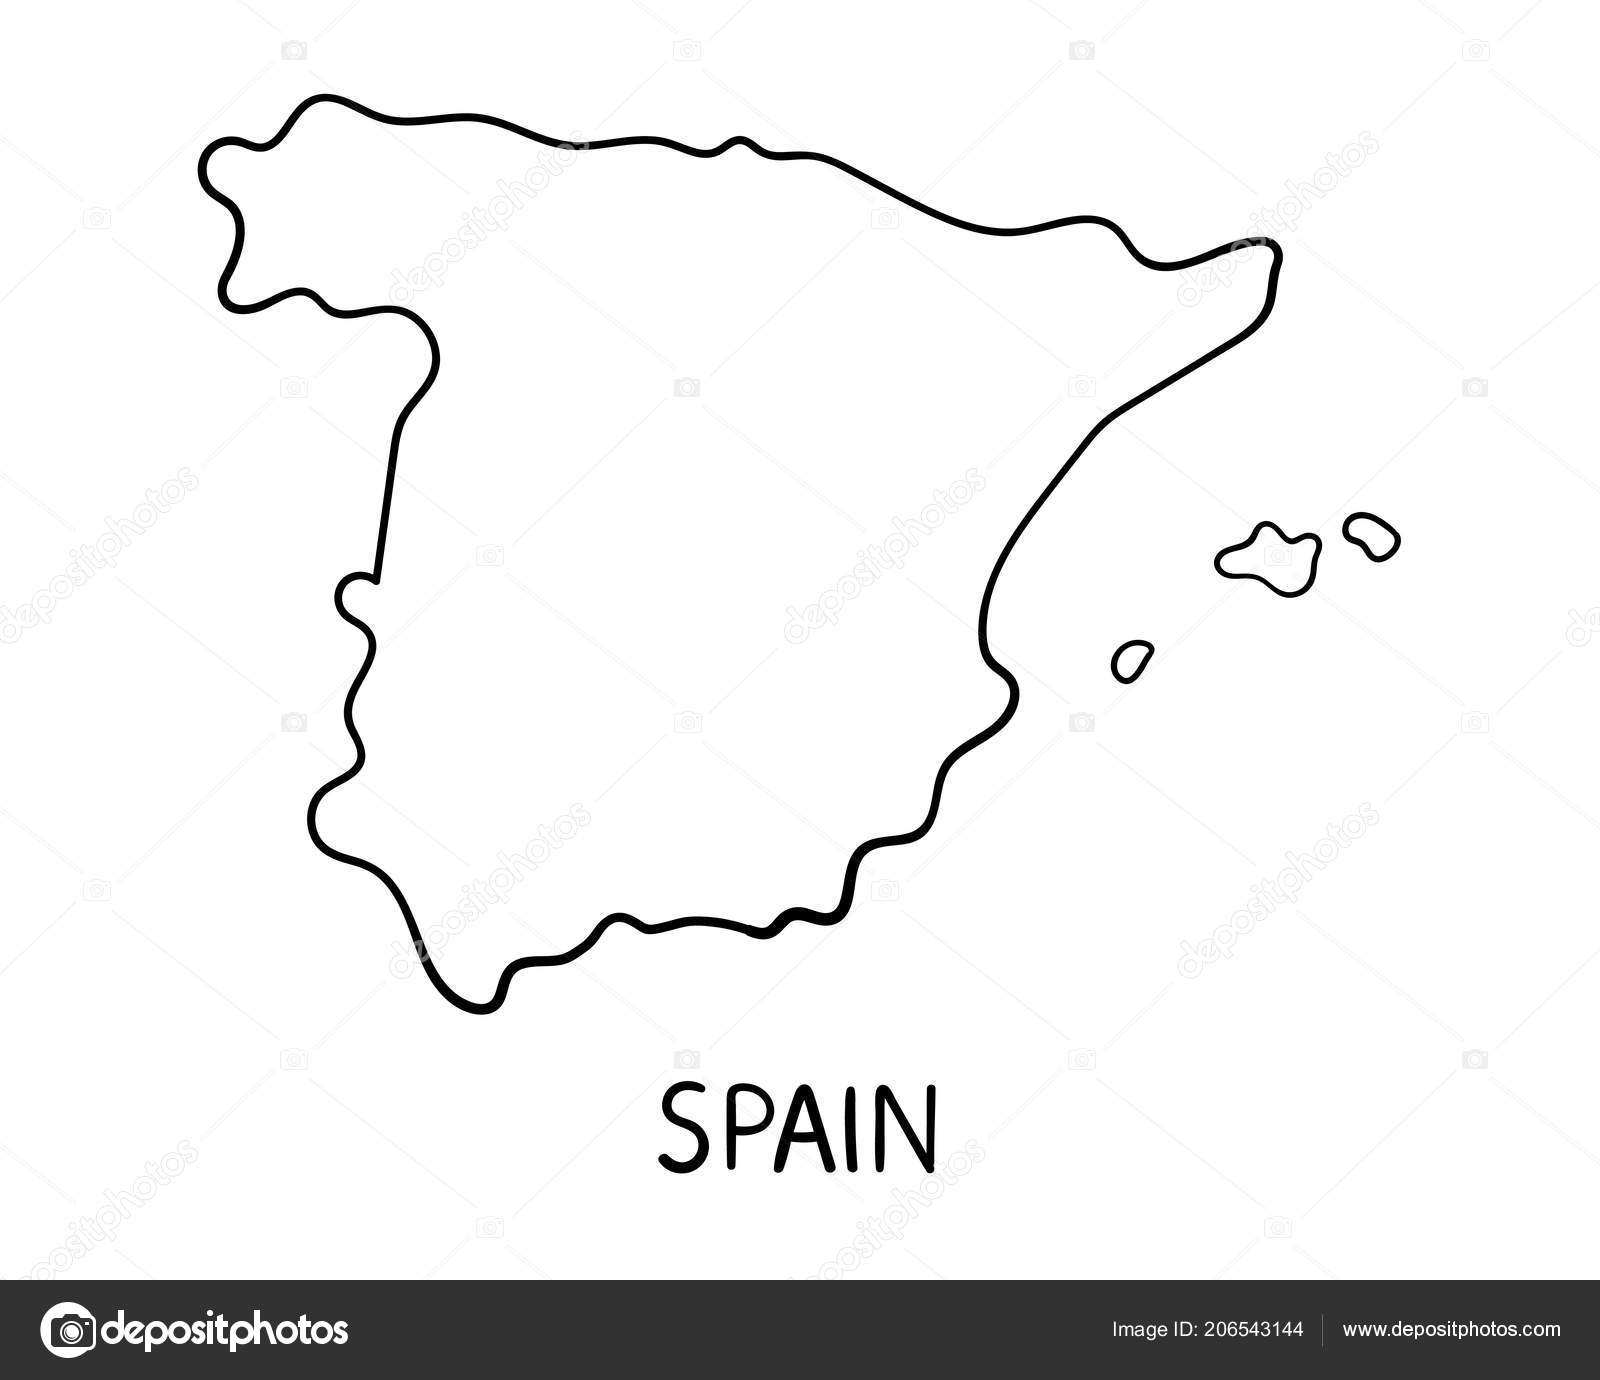 Map Of Spain Drawing.Spain Map Hand Drawn Illustration Stock Photo C Creuxnoir 206543144